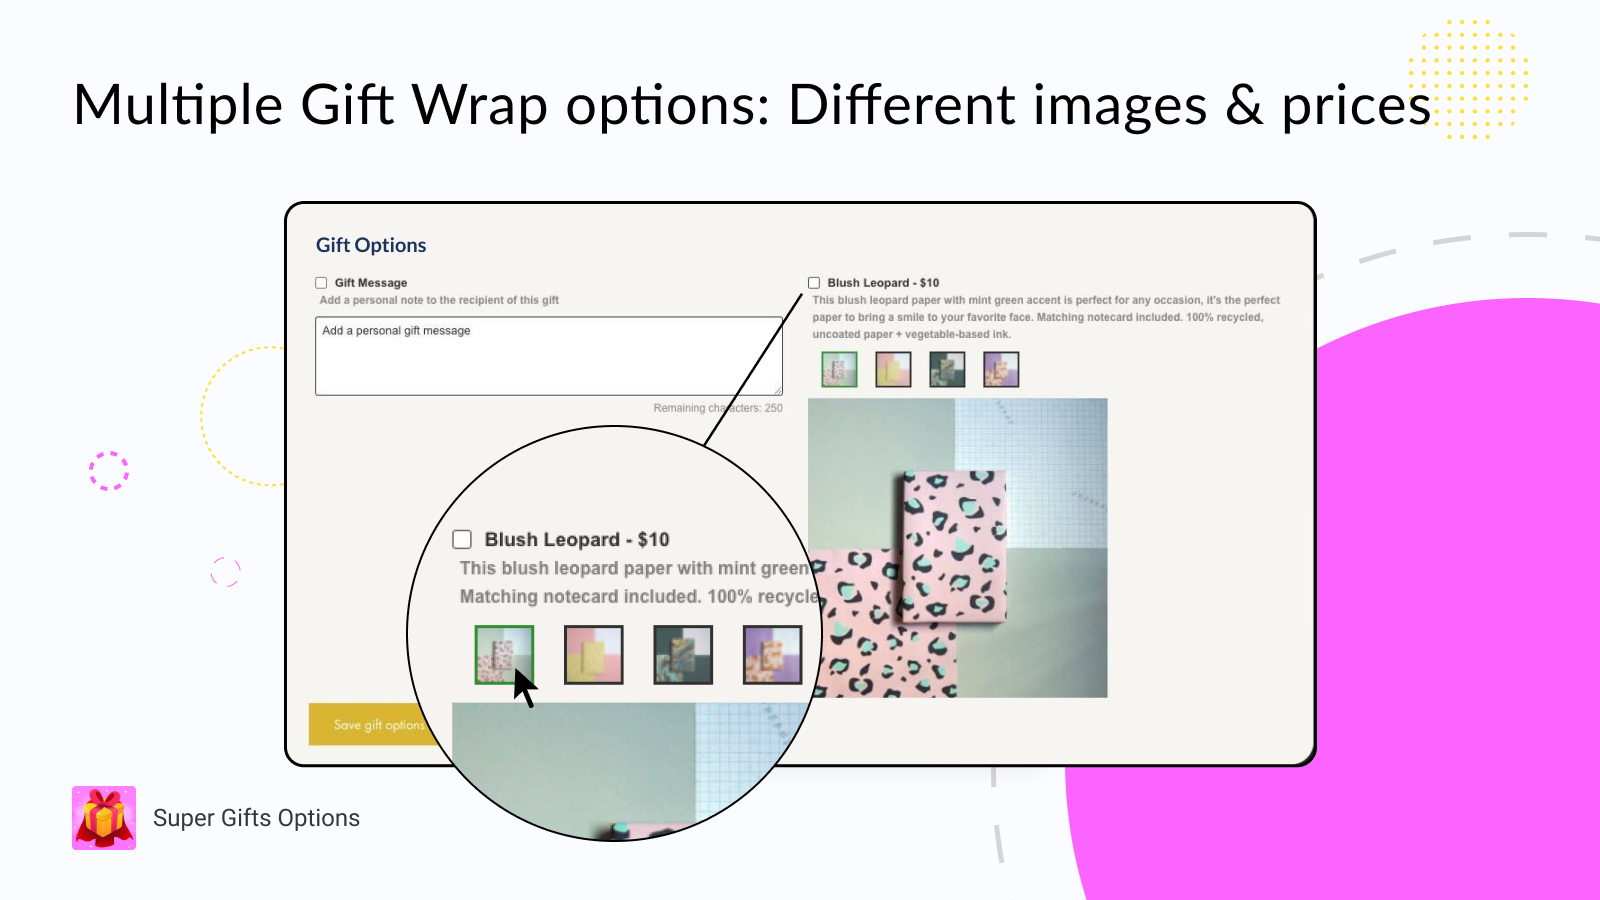 Multiple gift wrap options in different prices and images